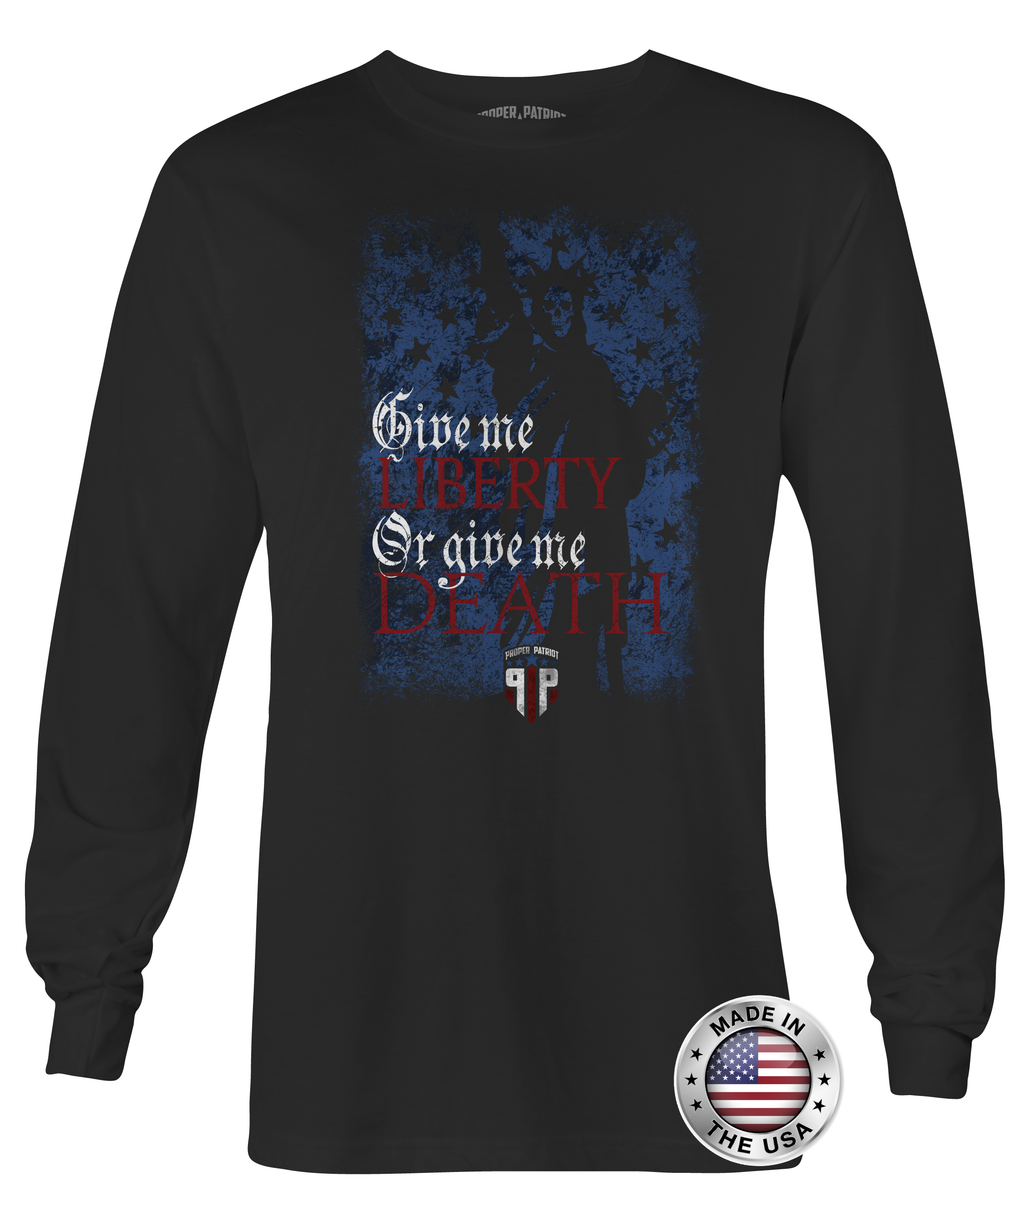 Liberty or Death - Unisex - Long Sleeve Shirt - Proper Patriot